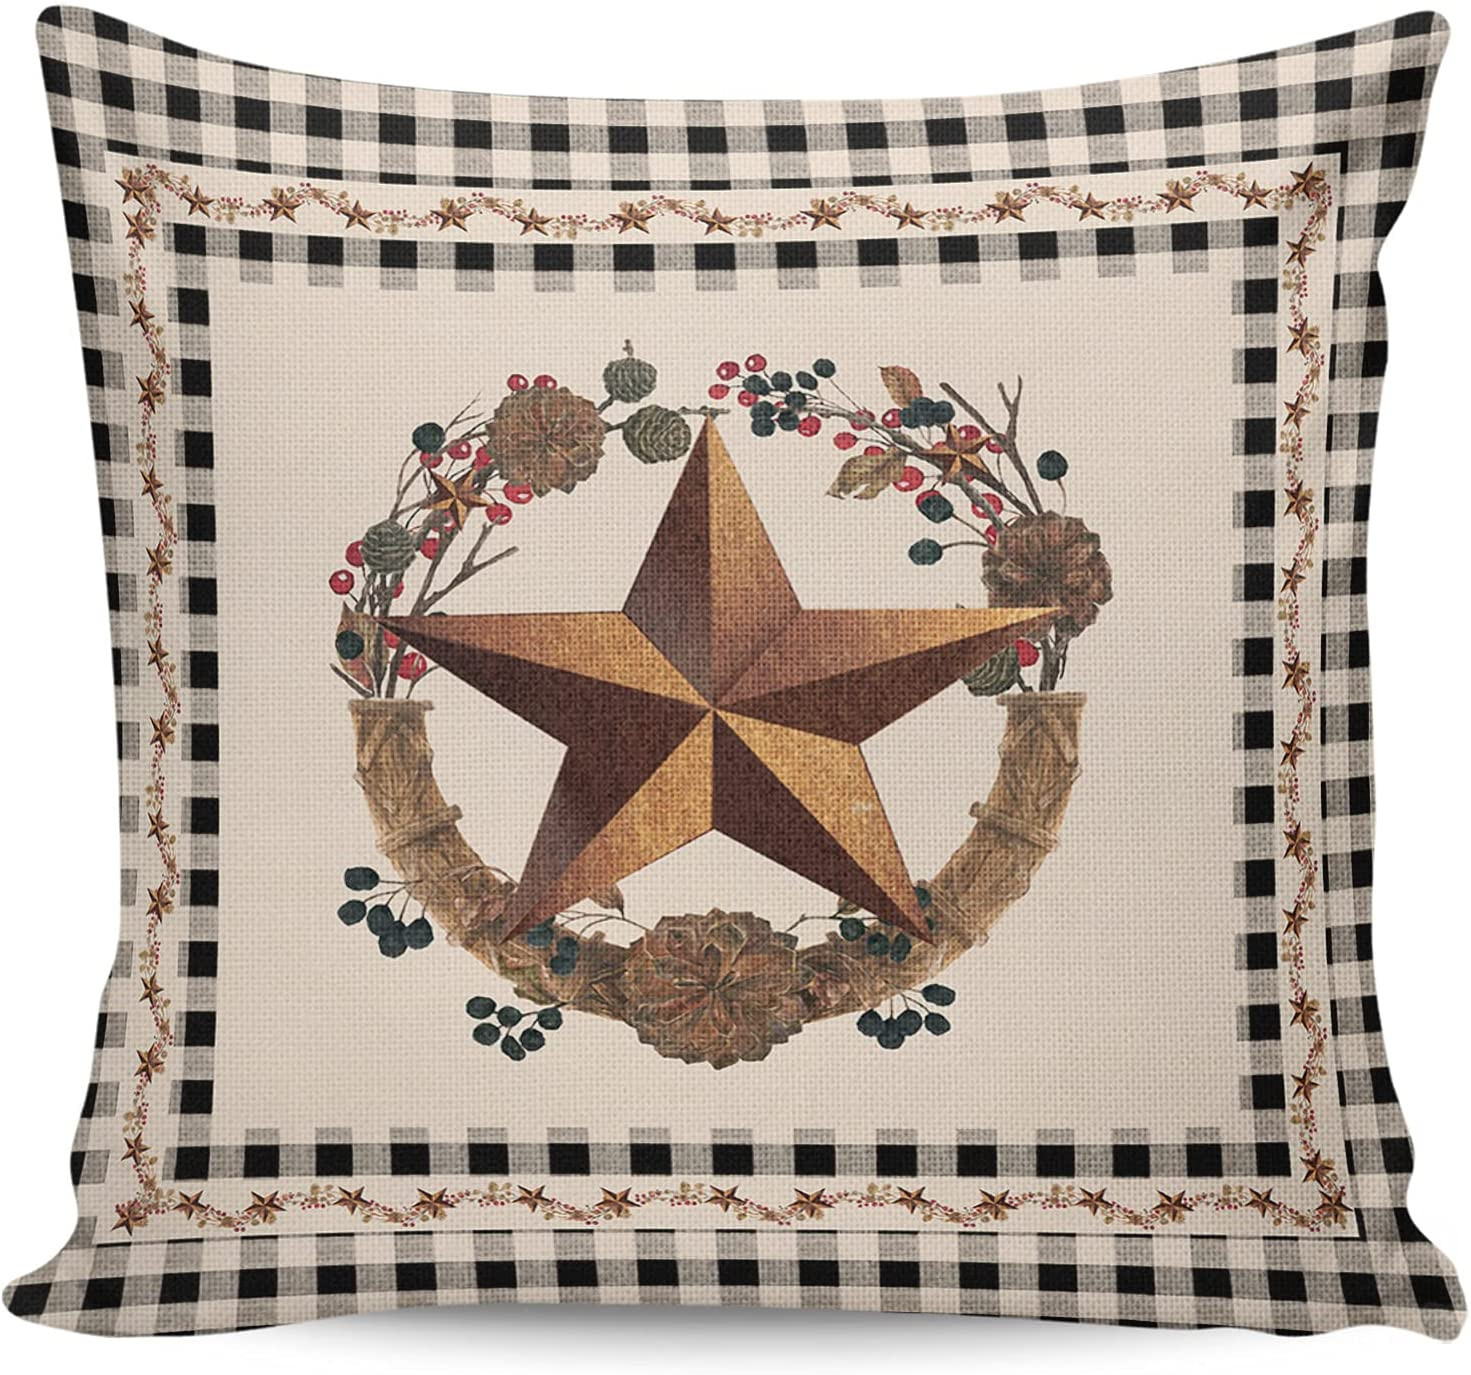 CHARMHOME Max 66% OFF OFFicial store Throw Pillow Covers Cases Wester Cushion Square